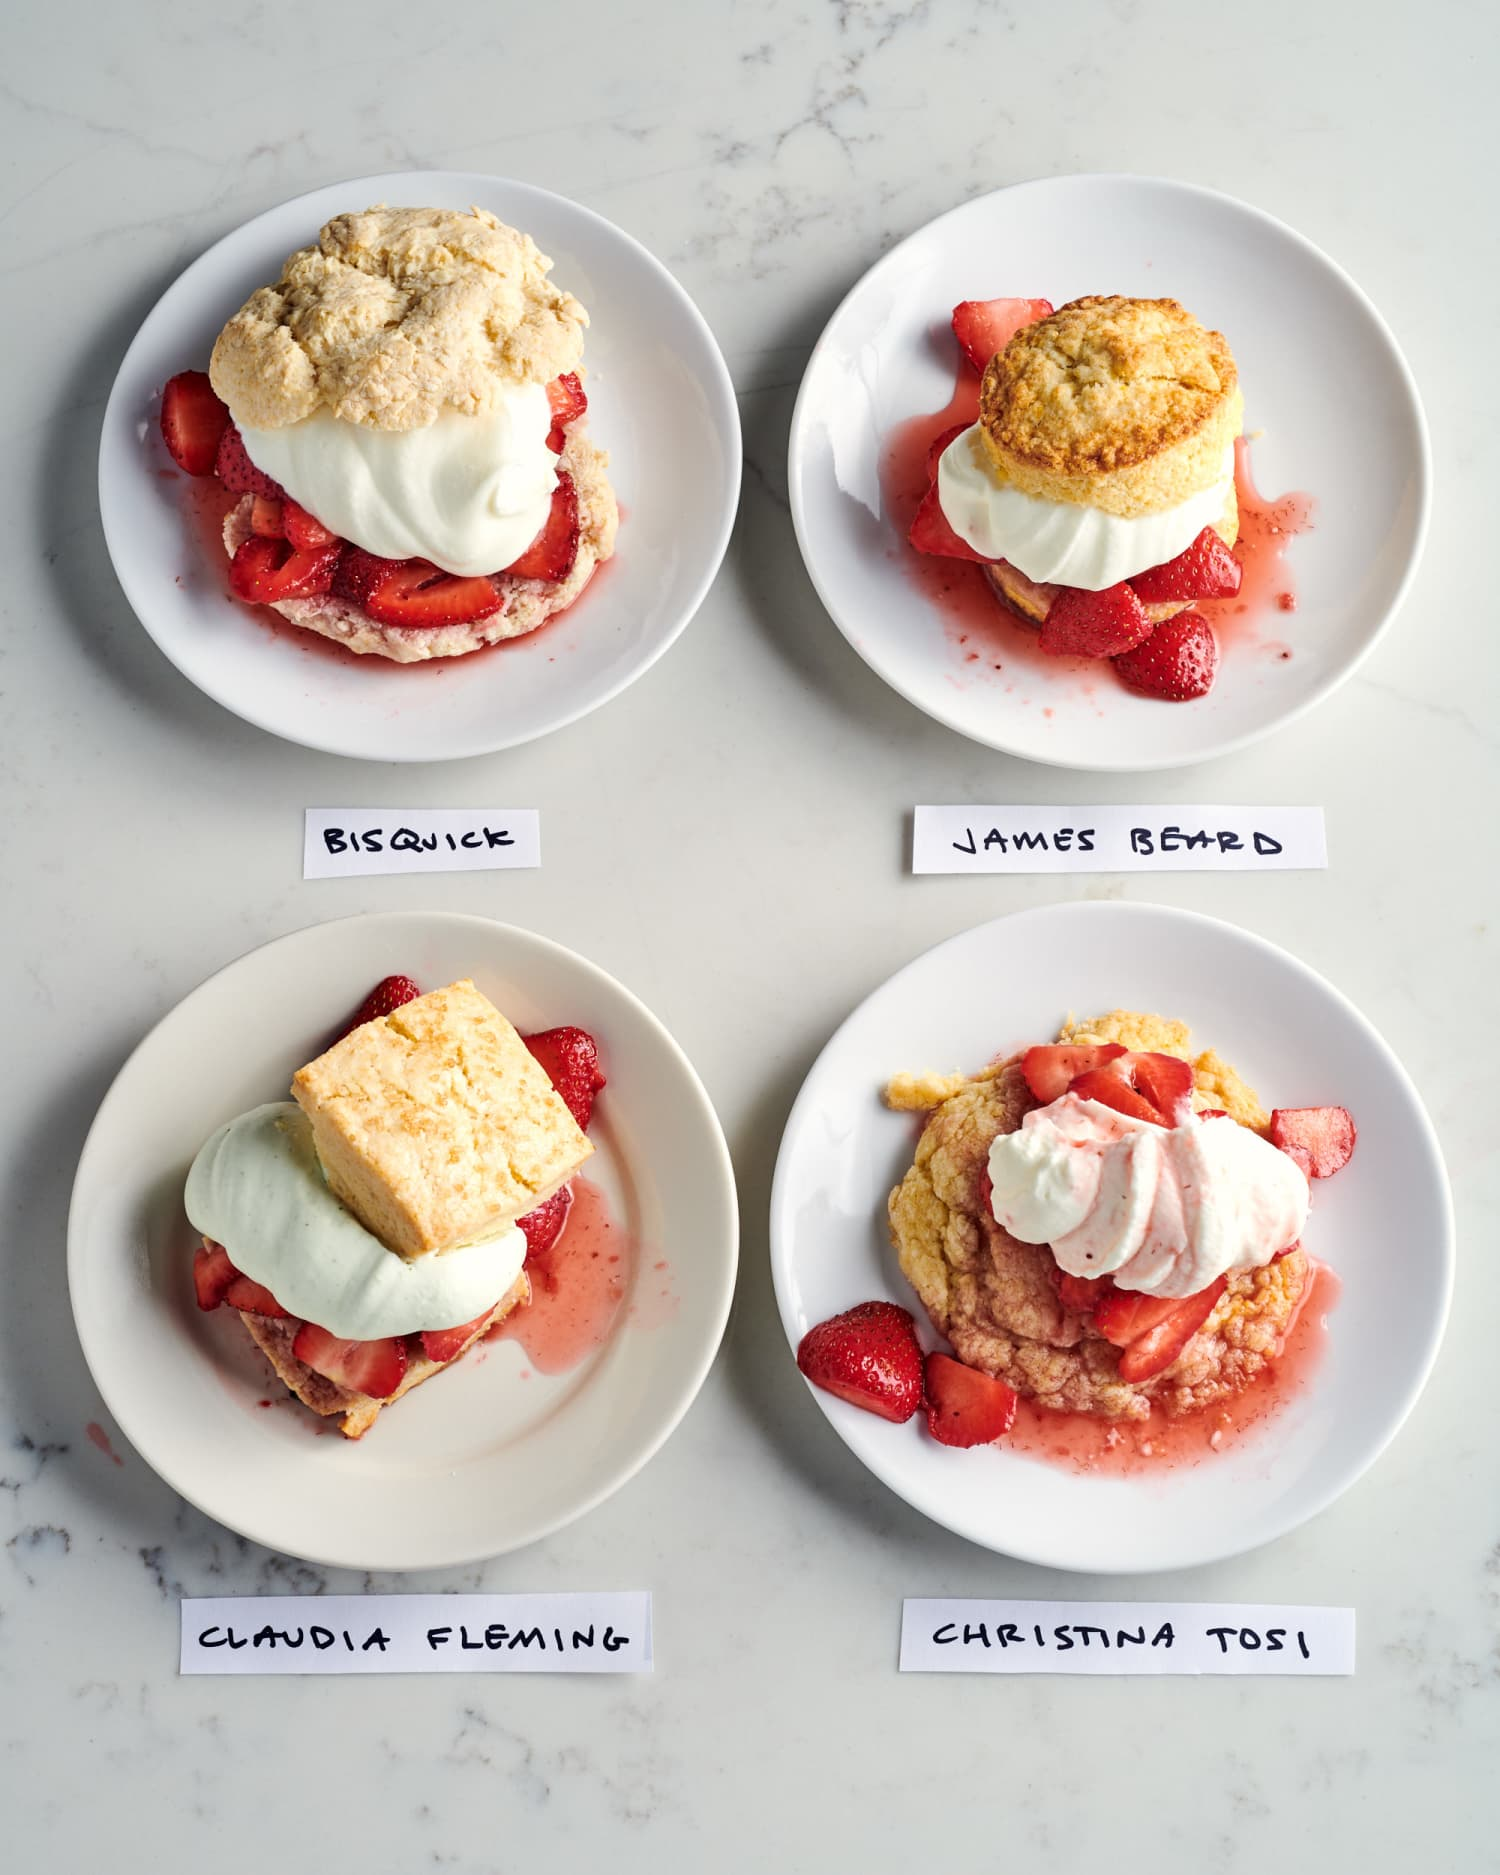 We Tested 4 Famous Strawberry Shortcake Recipes and the Winner Features a Wild Technique